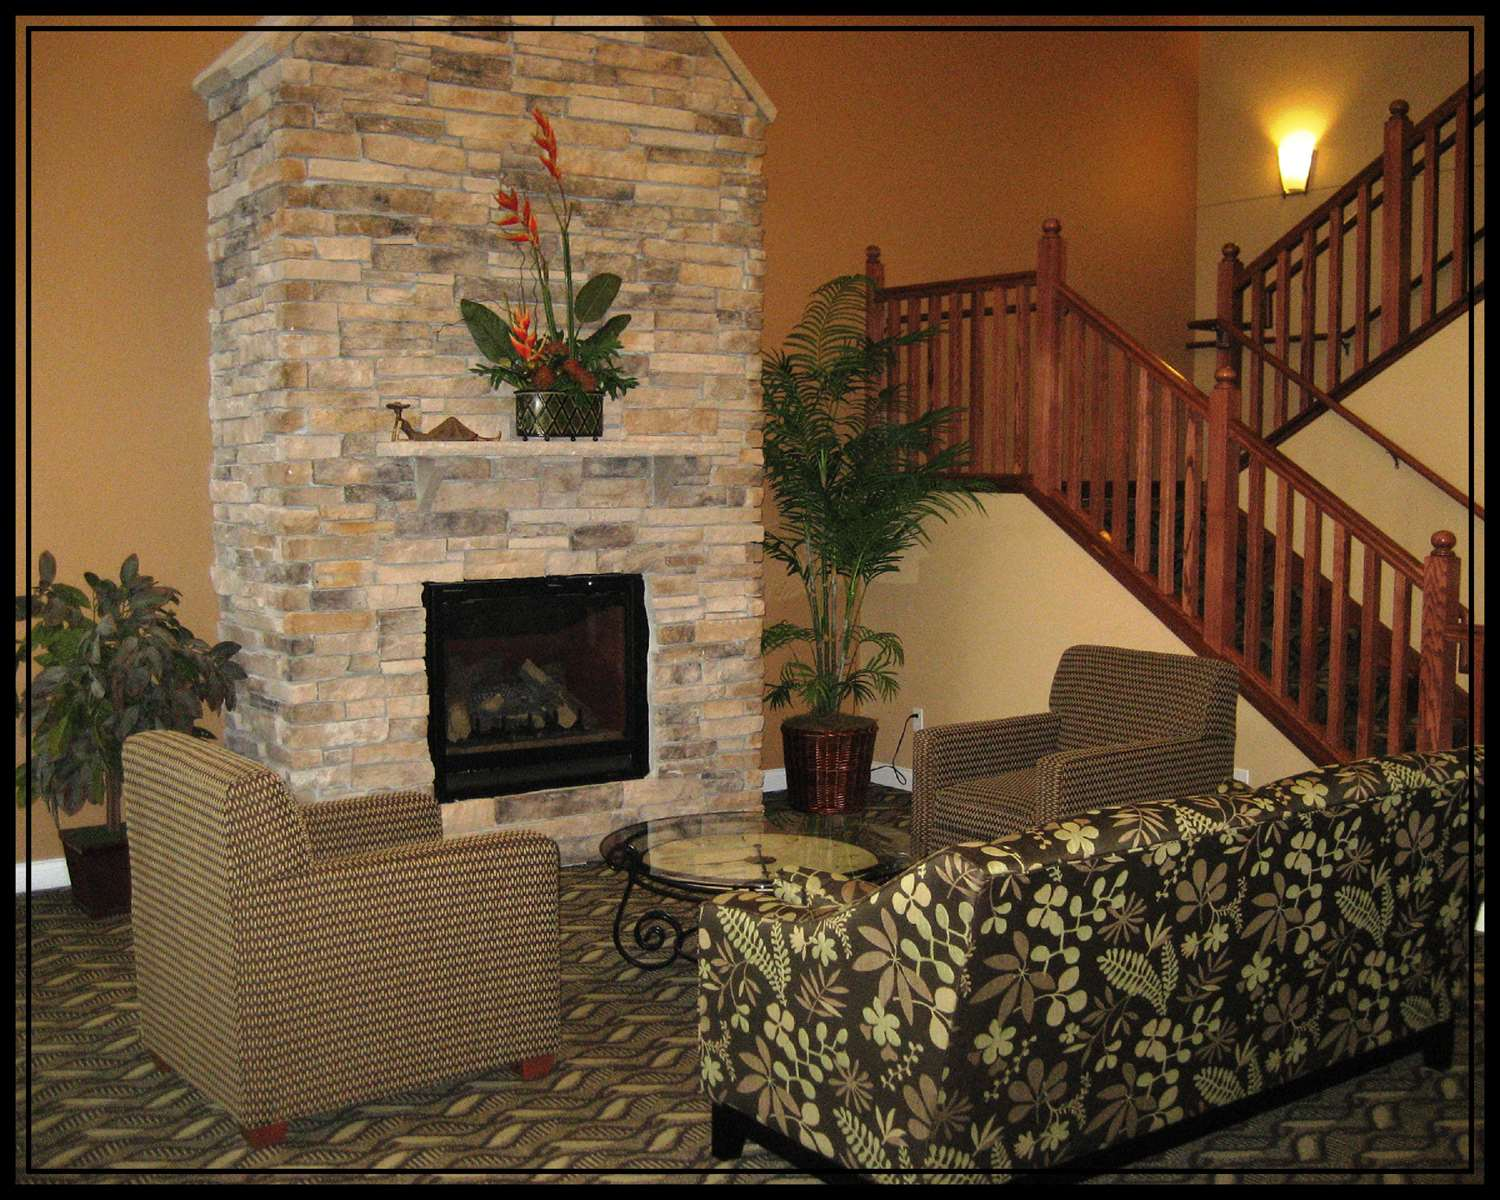 Lobby - Grandstay Hotel & Suites Pipestone